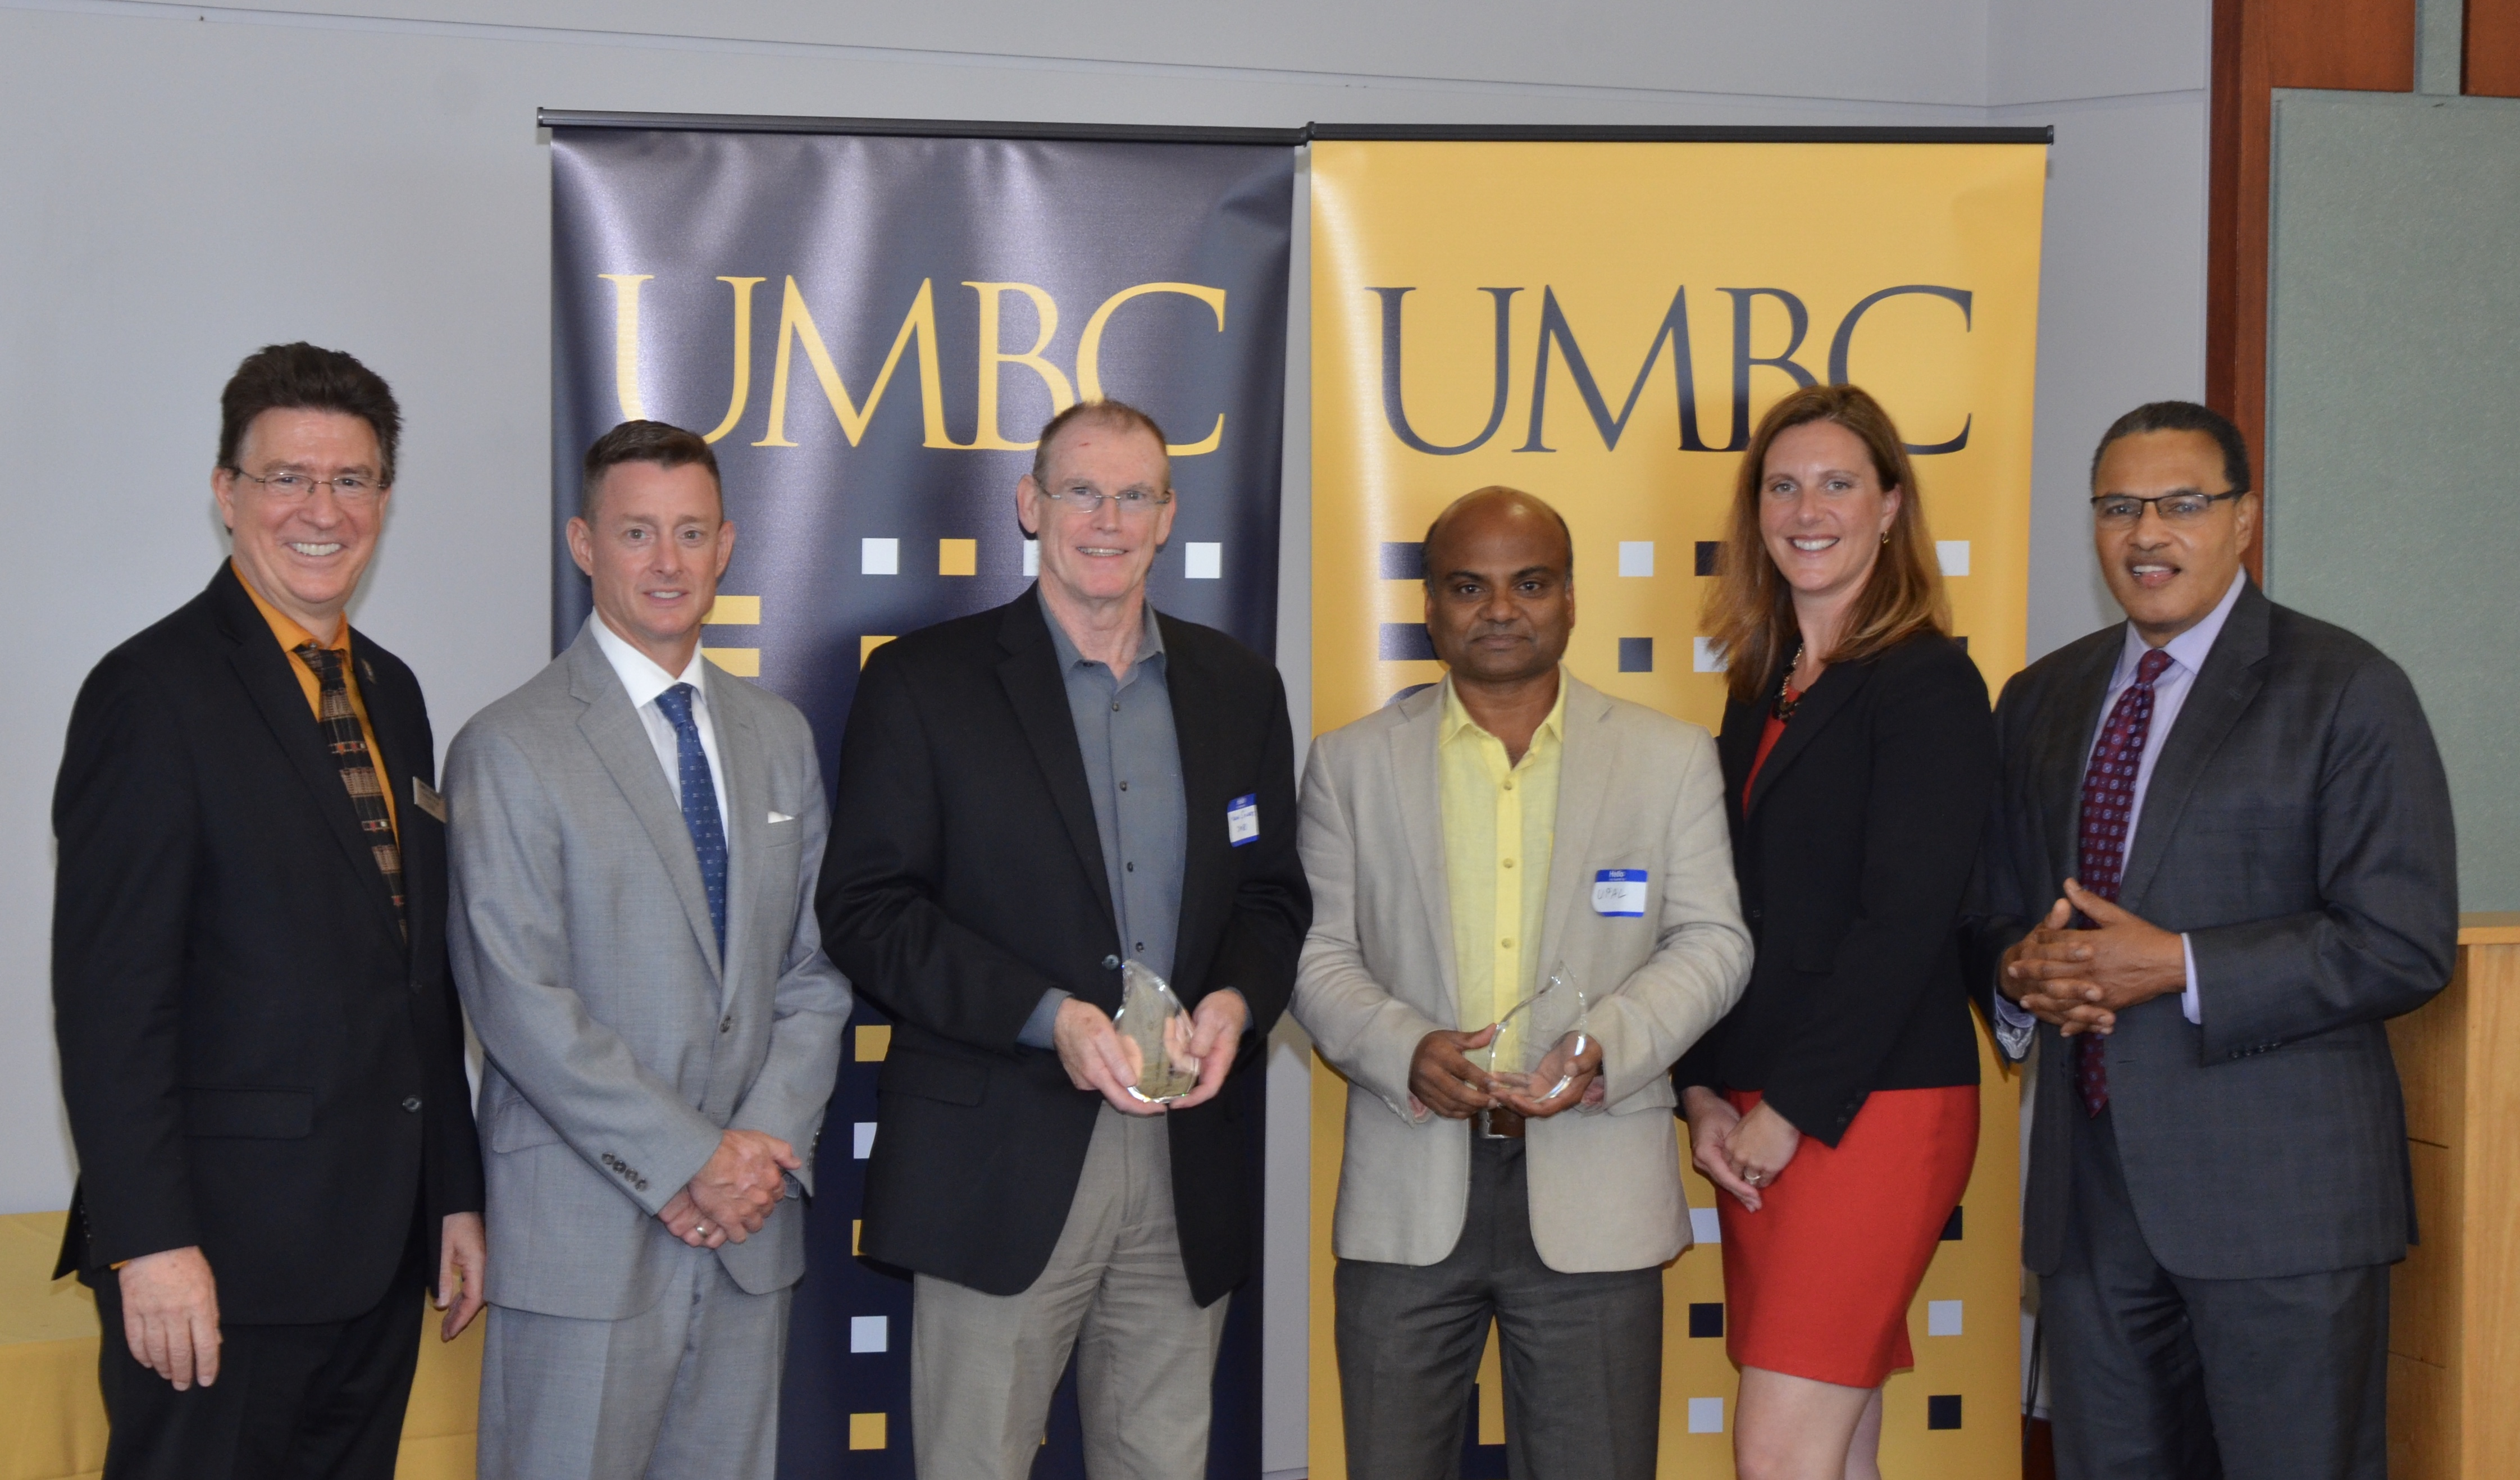 Upal Ghosh and Kevin Sowers stand in front of UMBC banners with UMBC officials